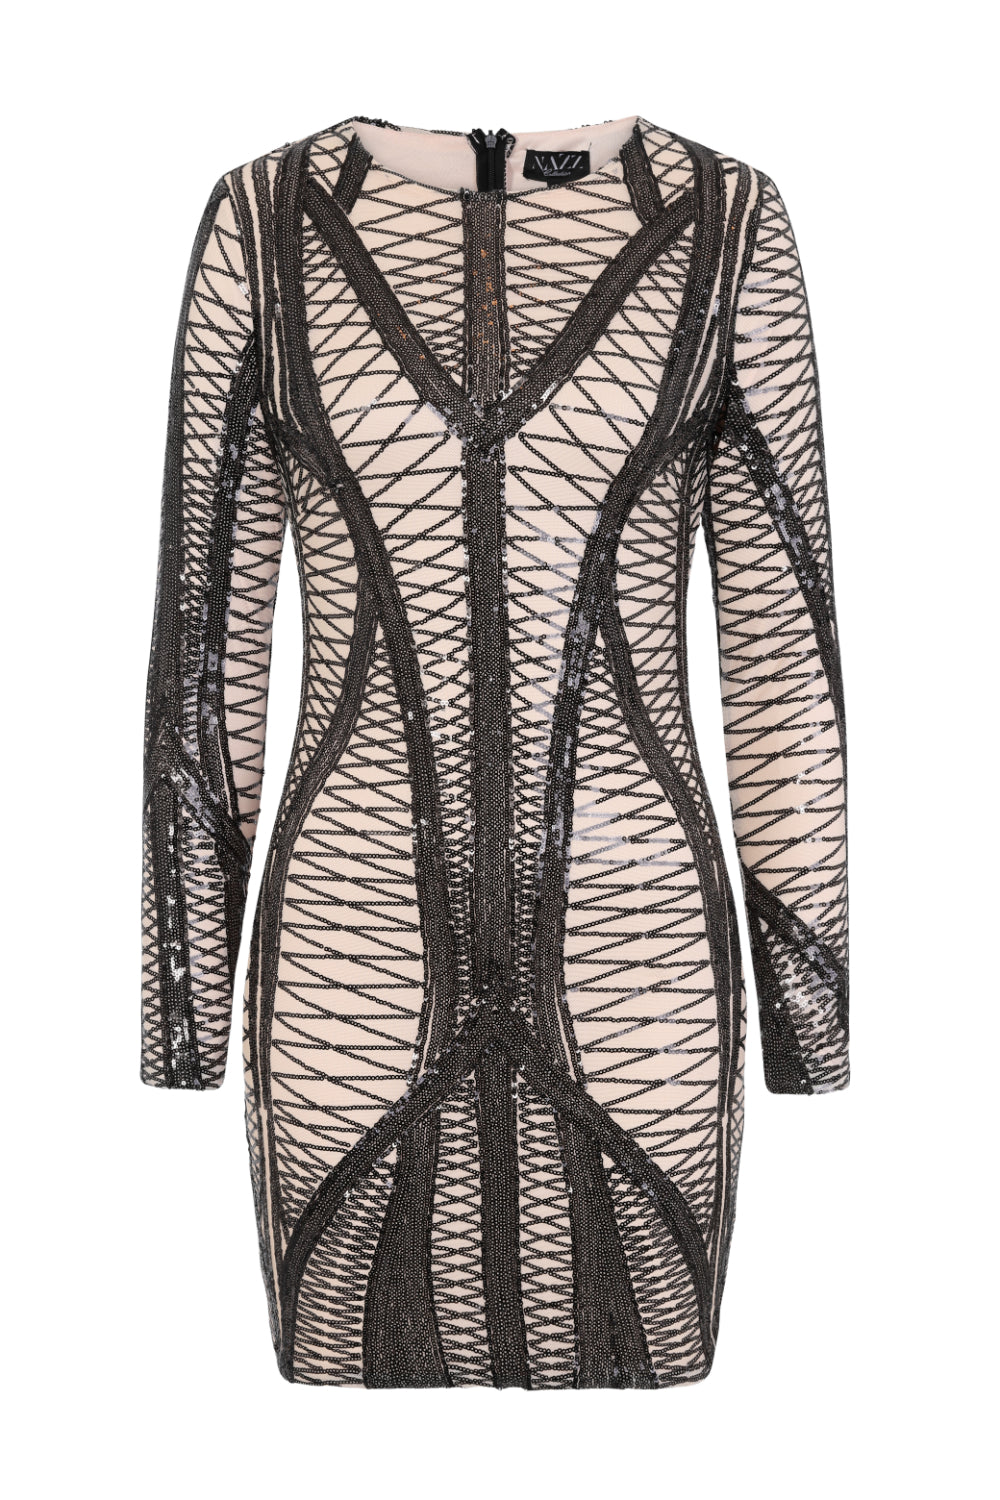 Hilton Luxe Black Nude Cage Sequin Bandage Illusion Dress